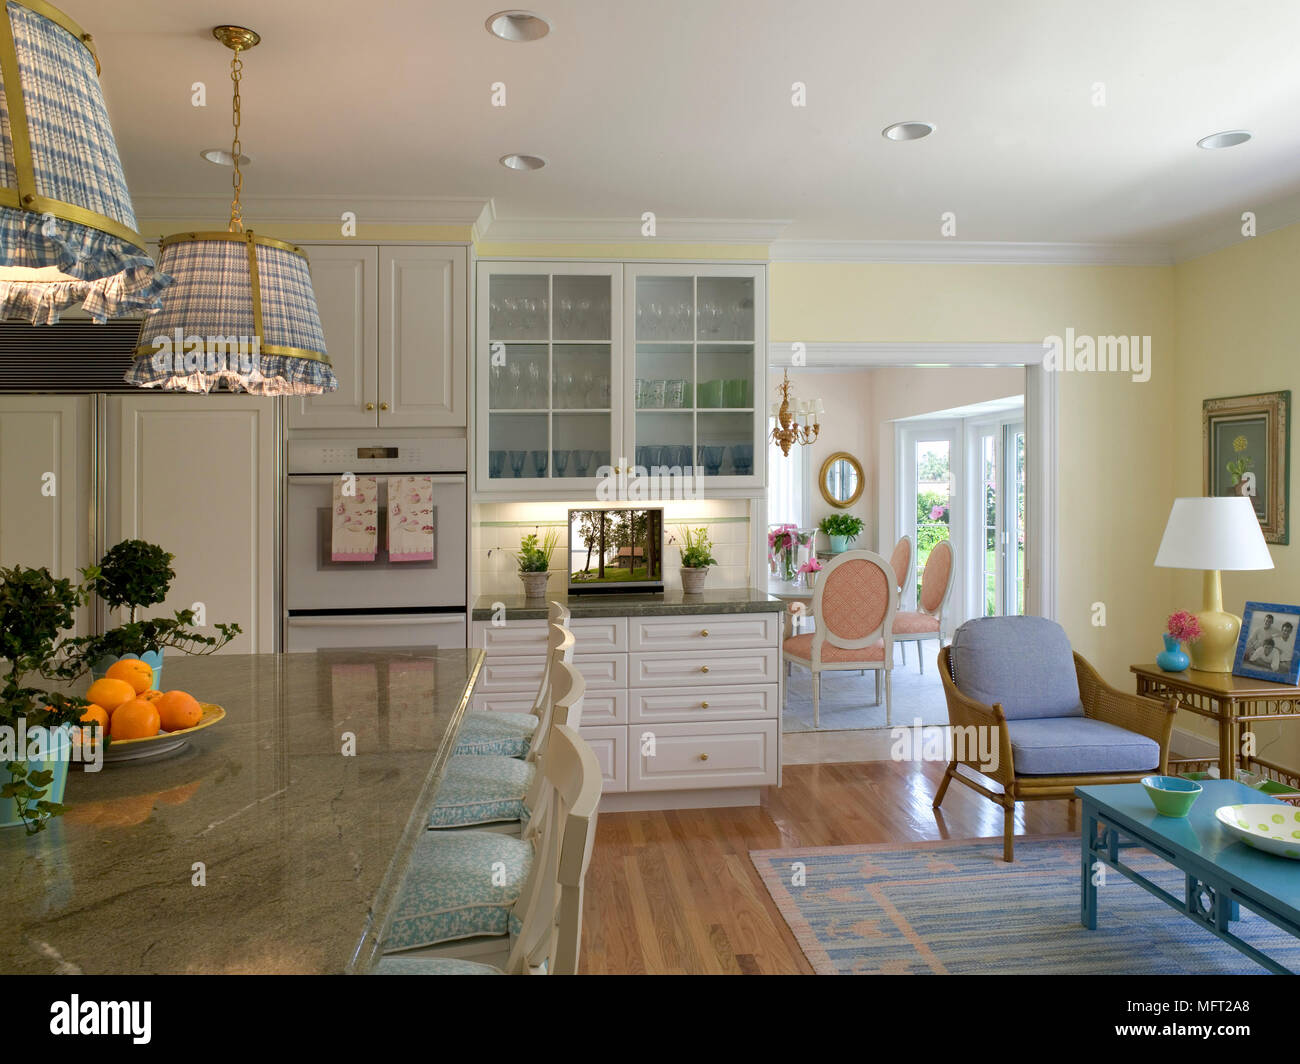 A Modern Open Plan Kitchen With Dining Area Marble Table Chairs Sitting Area A Doorway Leading Into The Dining Room Stock Photo Alamy